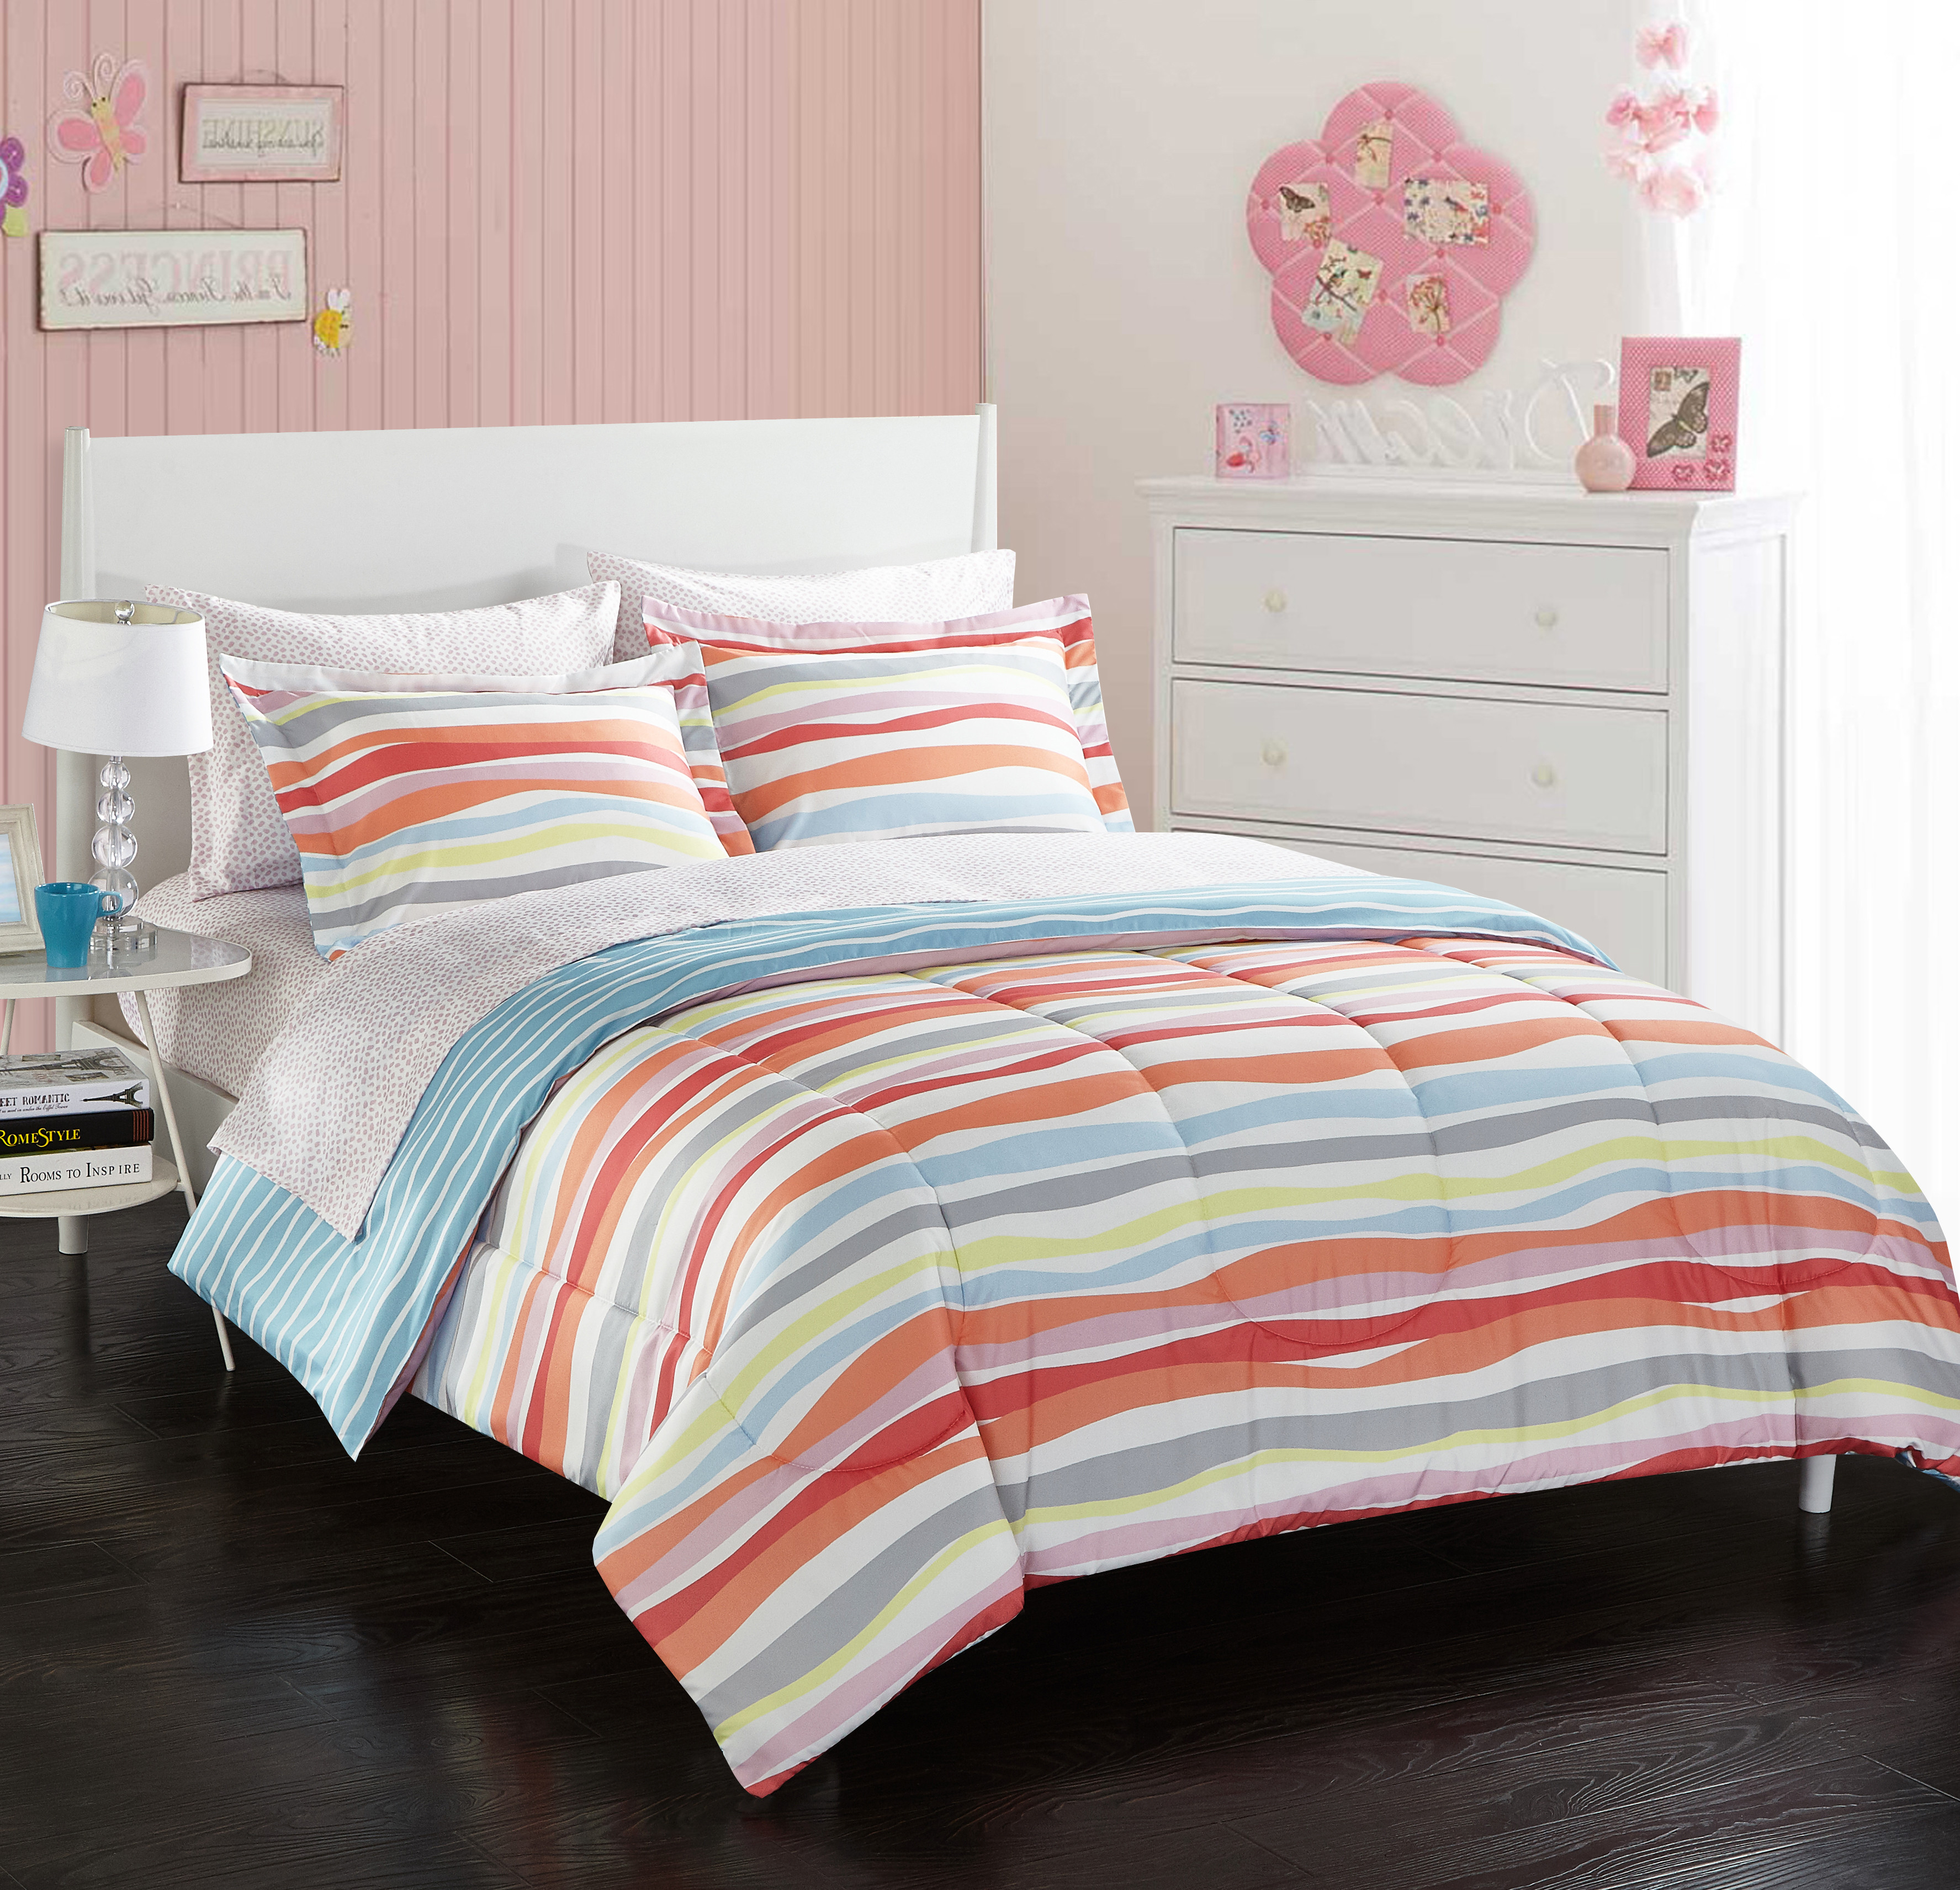 Your Zone Laguna Stripe Bed in a Bag